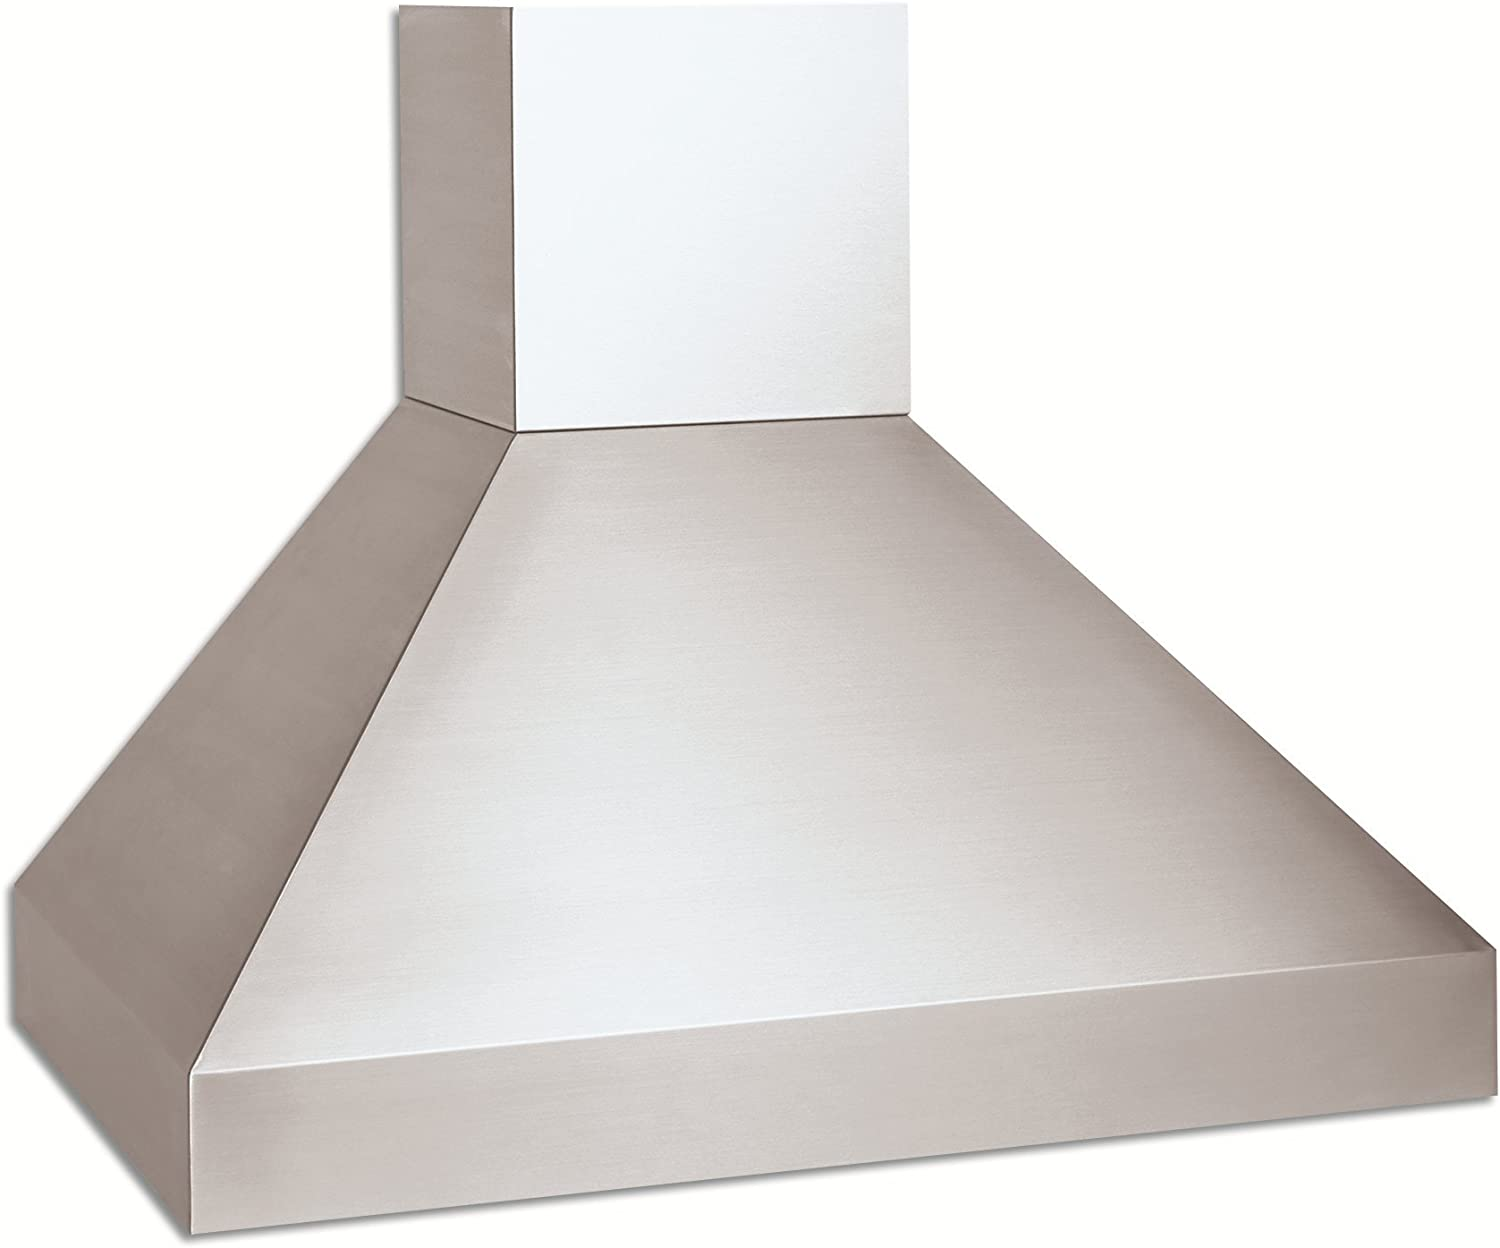 B001J4ECAK Vent-A-Hood Duct Cover for Euro-Style Wall Mount Range Hood 9', Stainless Steel(WDC-12/24 SS) 71abLyfUm9L